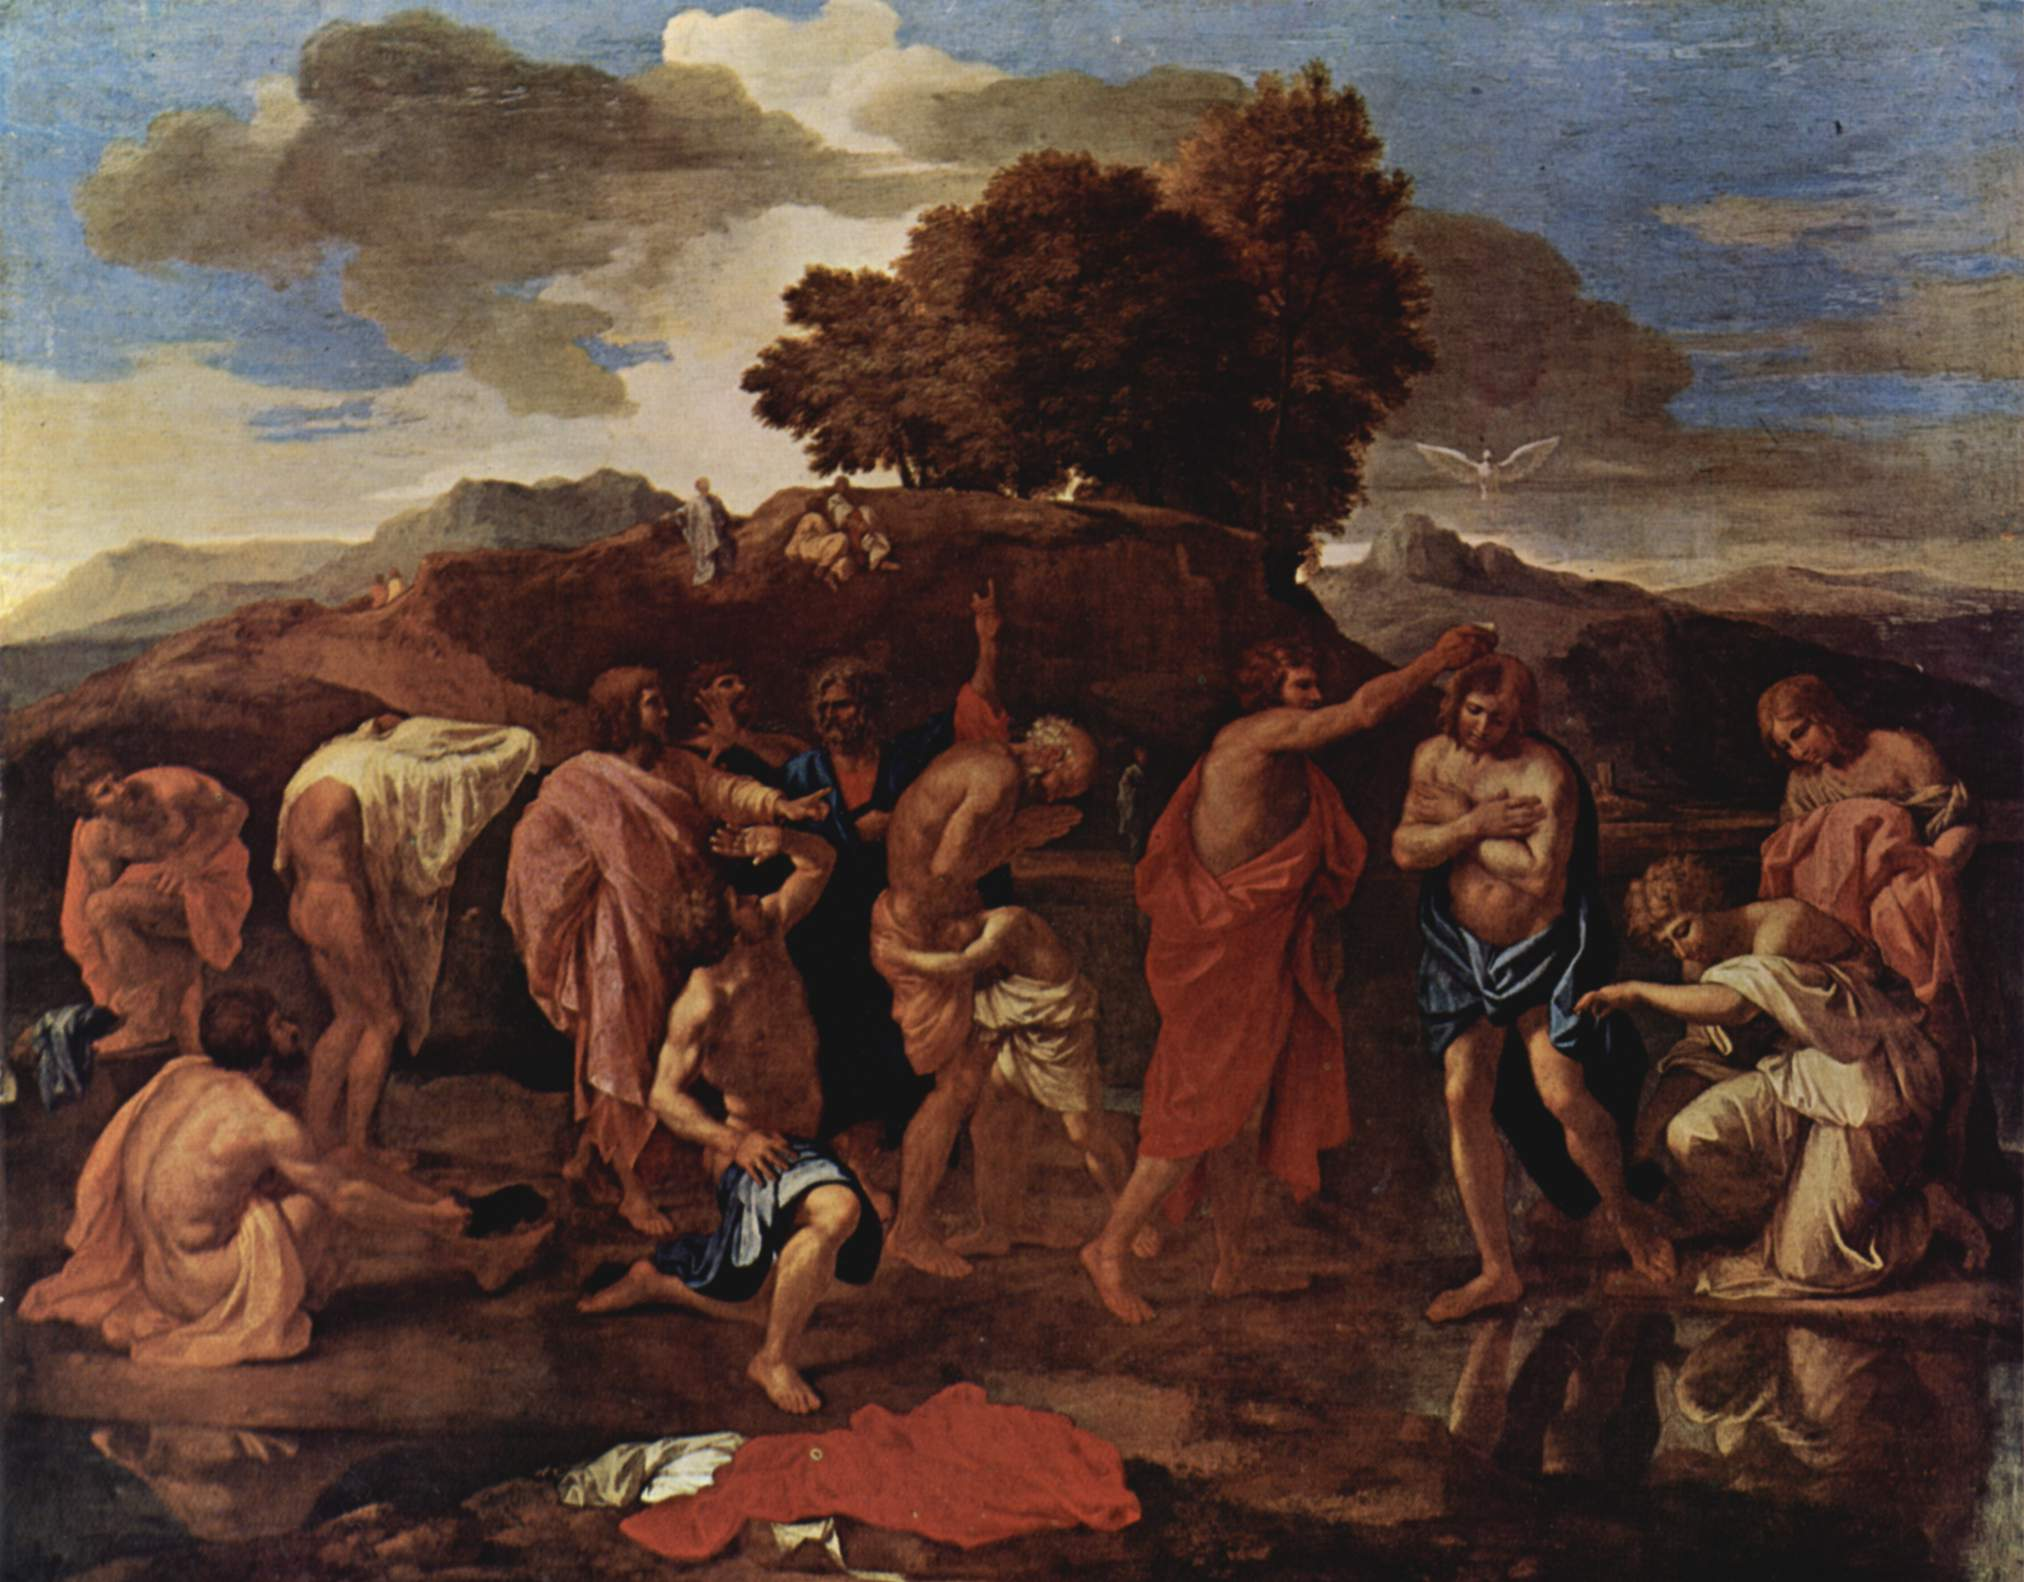 a biography of nicolas poussin the painter philosopher 1594 – nicolas poussin, born on the 15th of june in les andelys, haute normandie, france he was a french painter in the french baroque style.